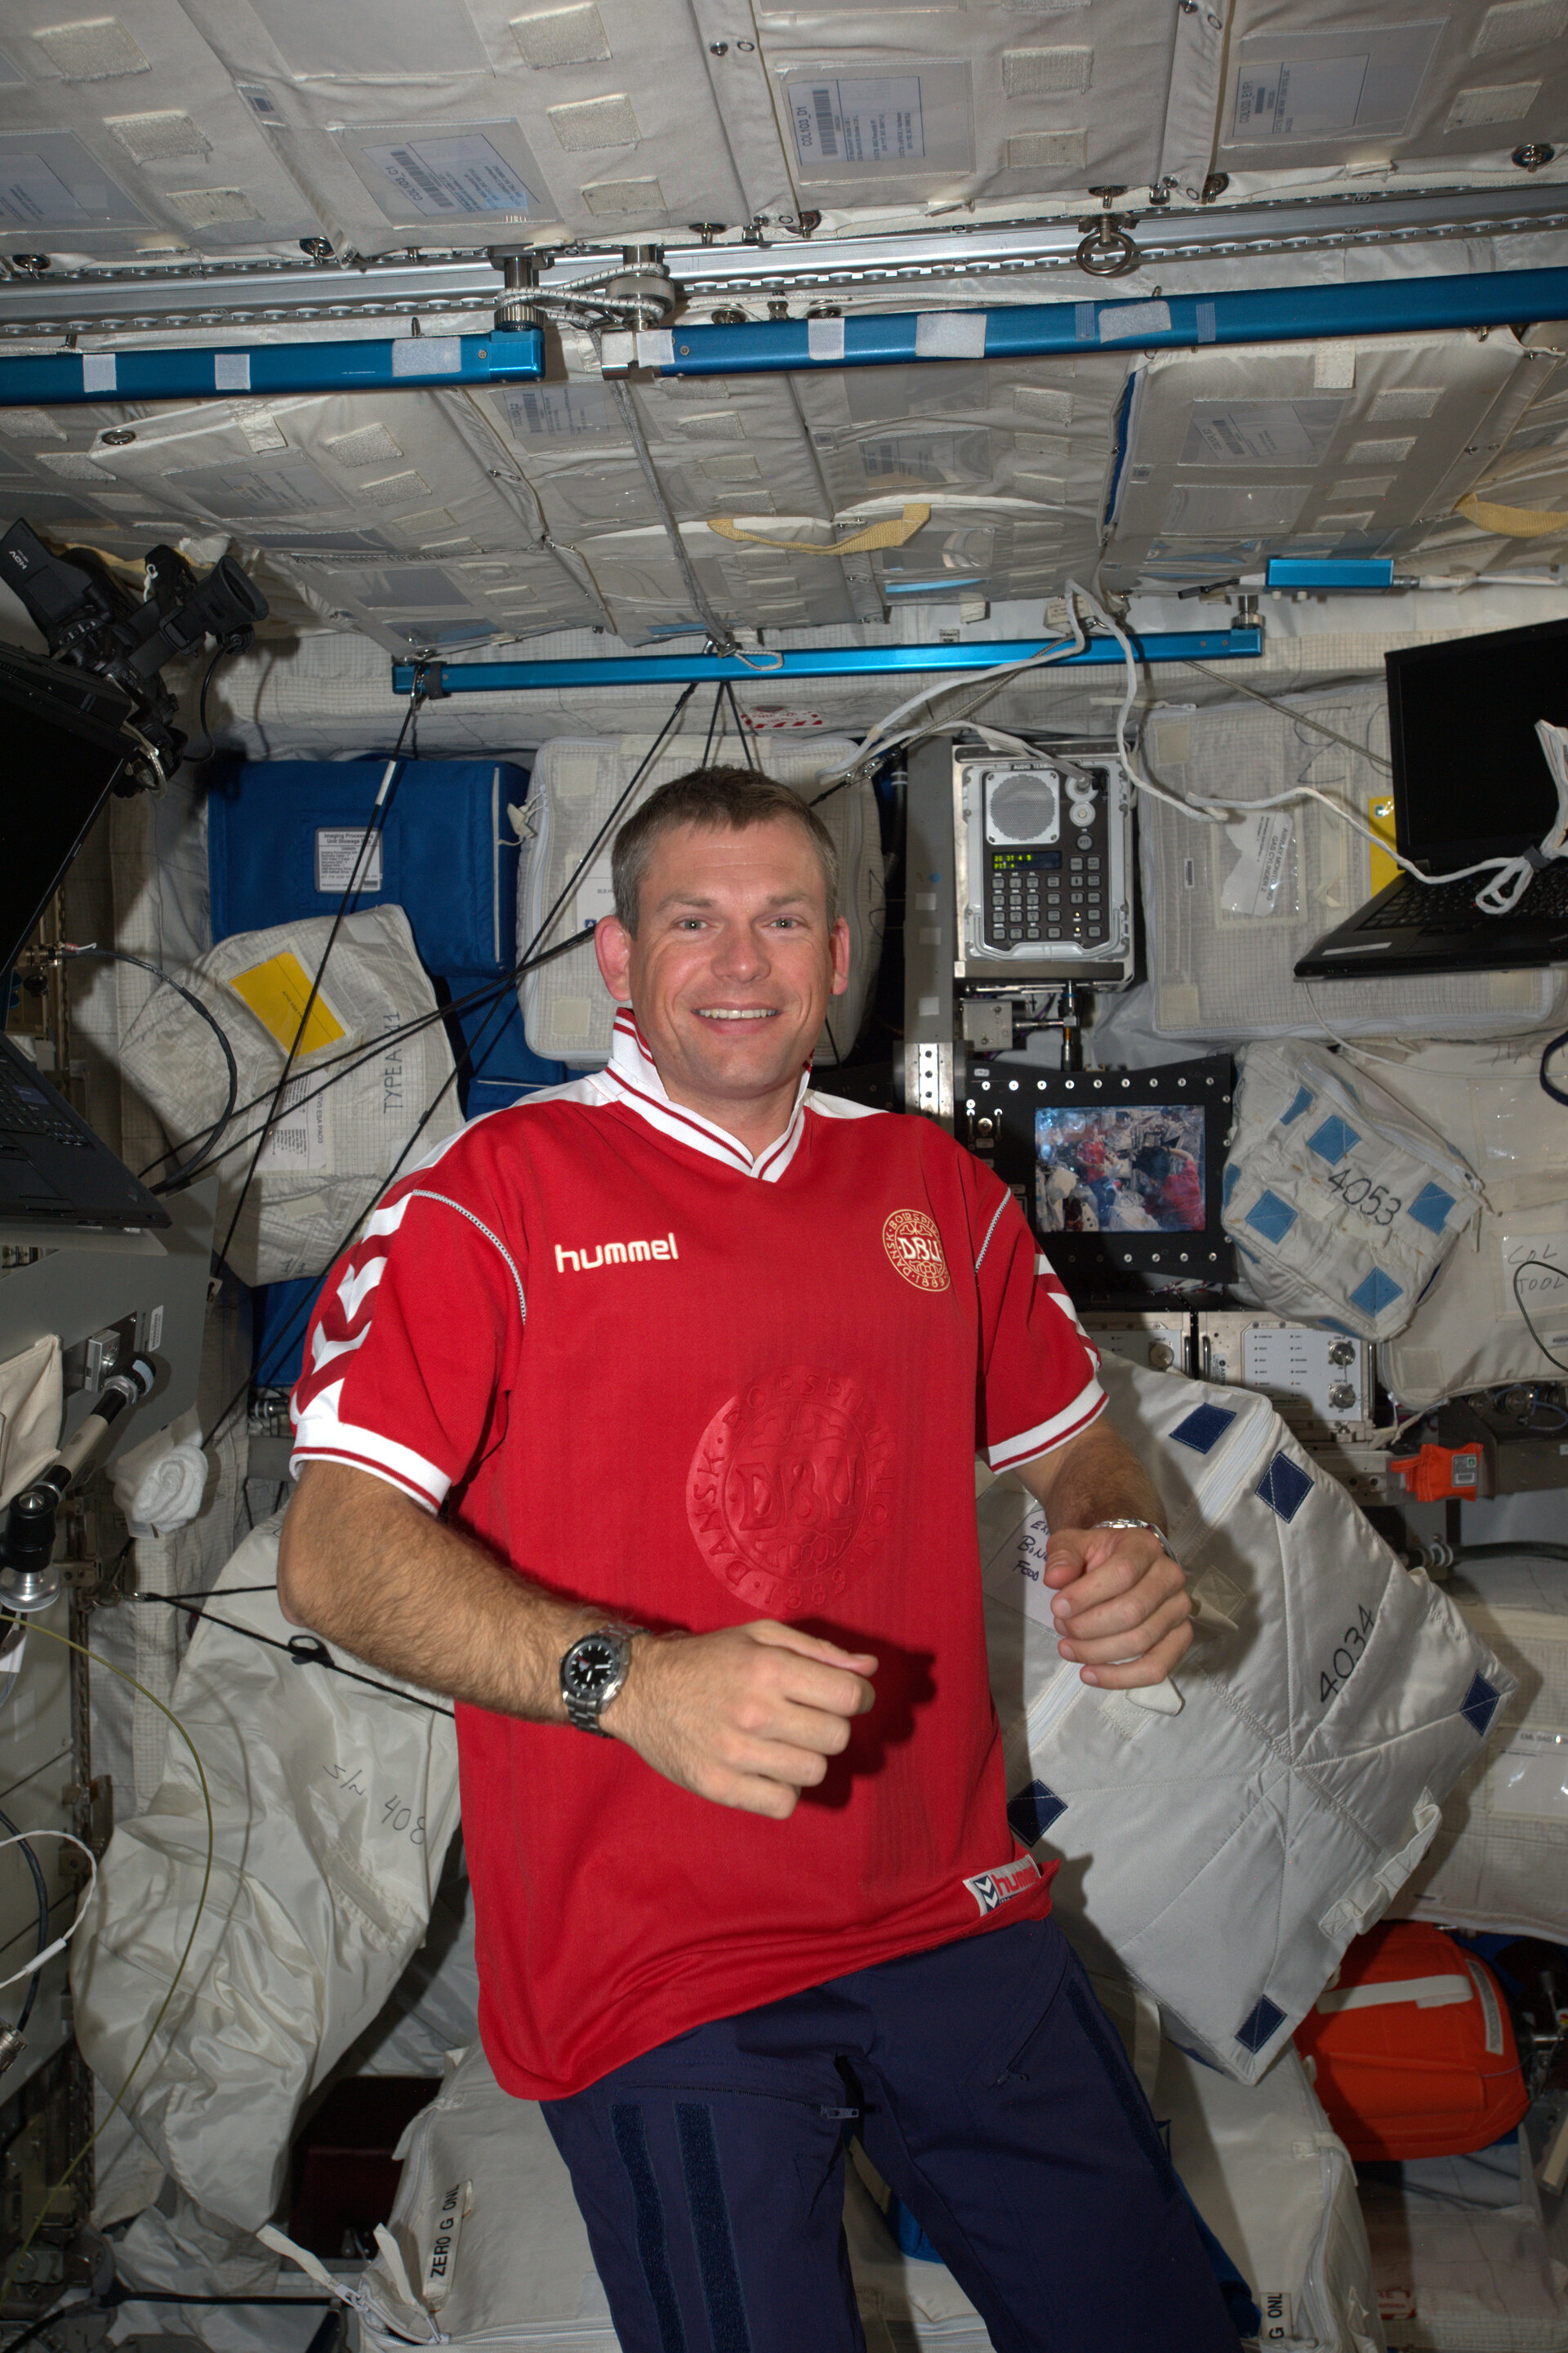 Andreas' first day in Space Station